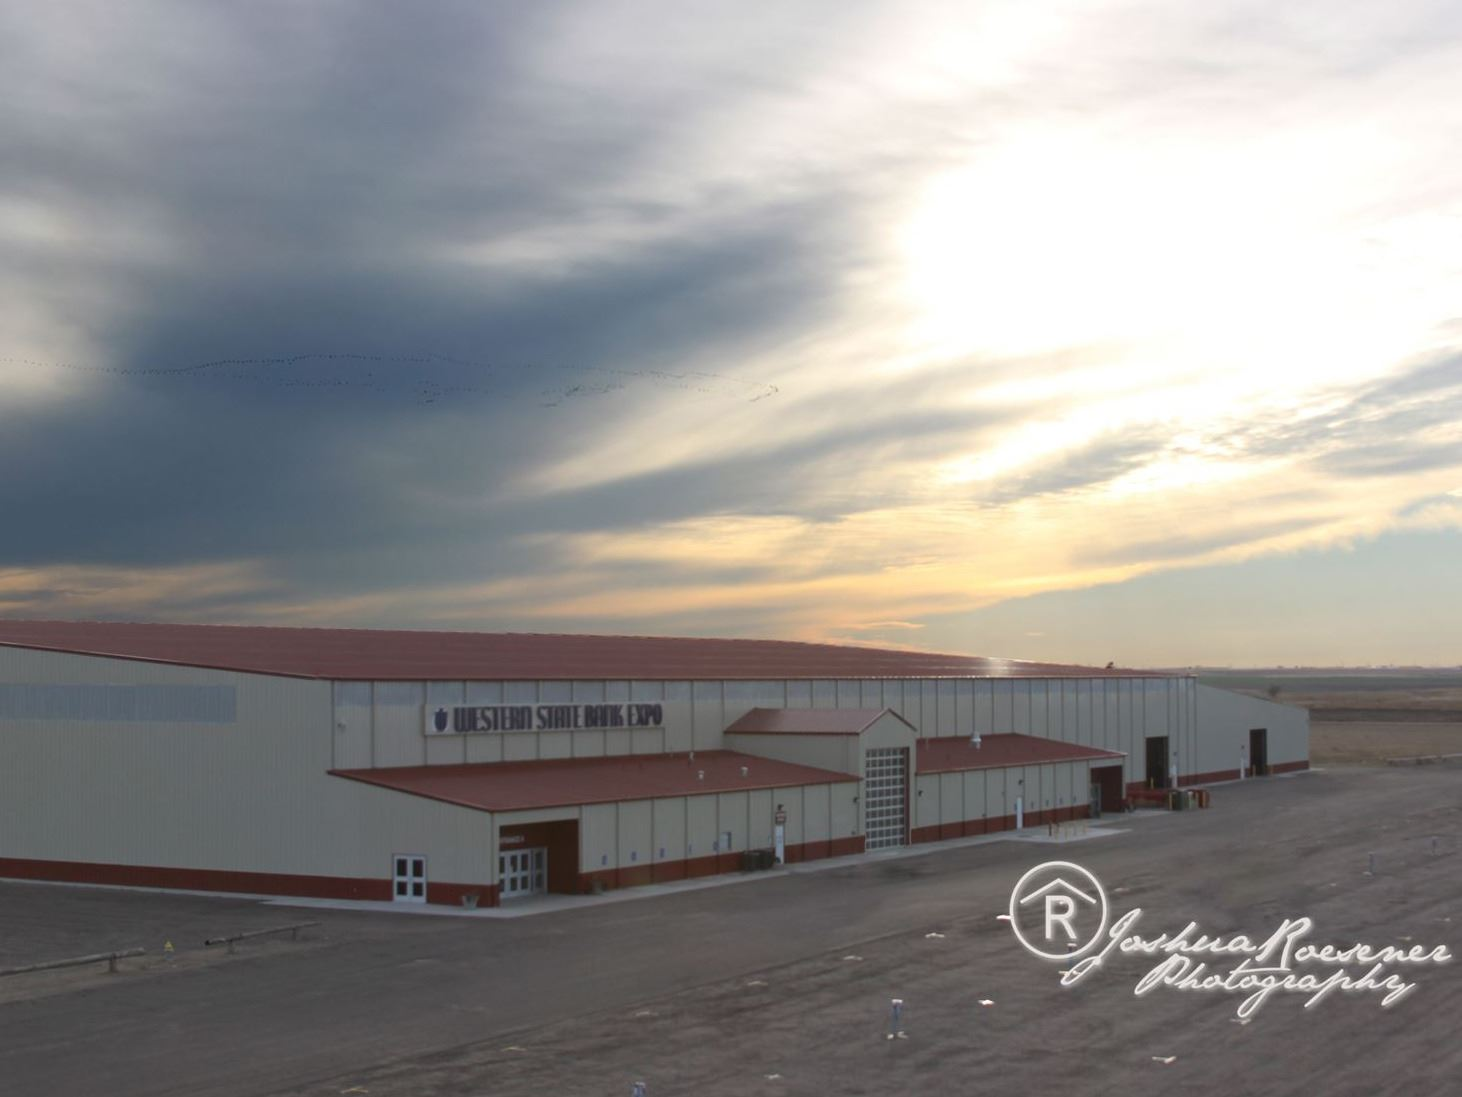 Large Expo Center in Western Kansas